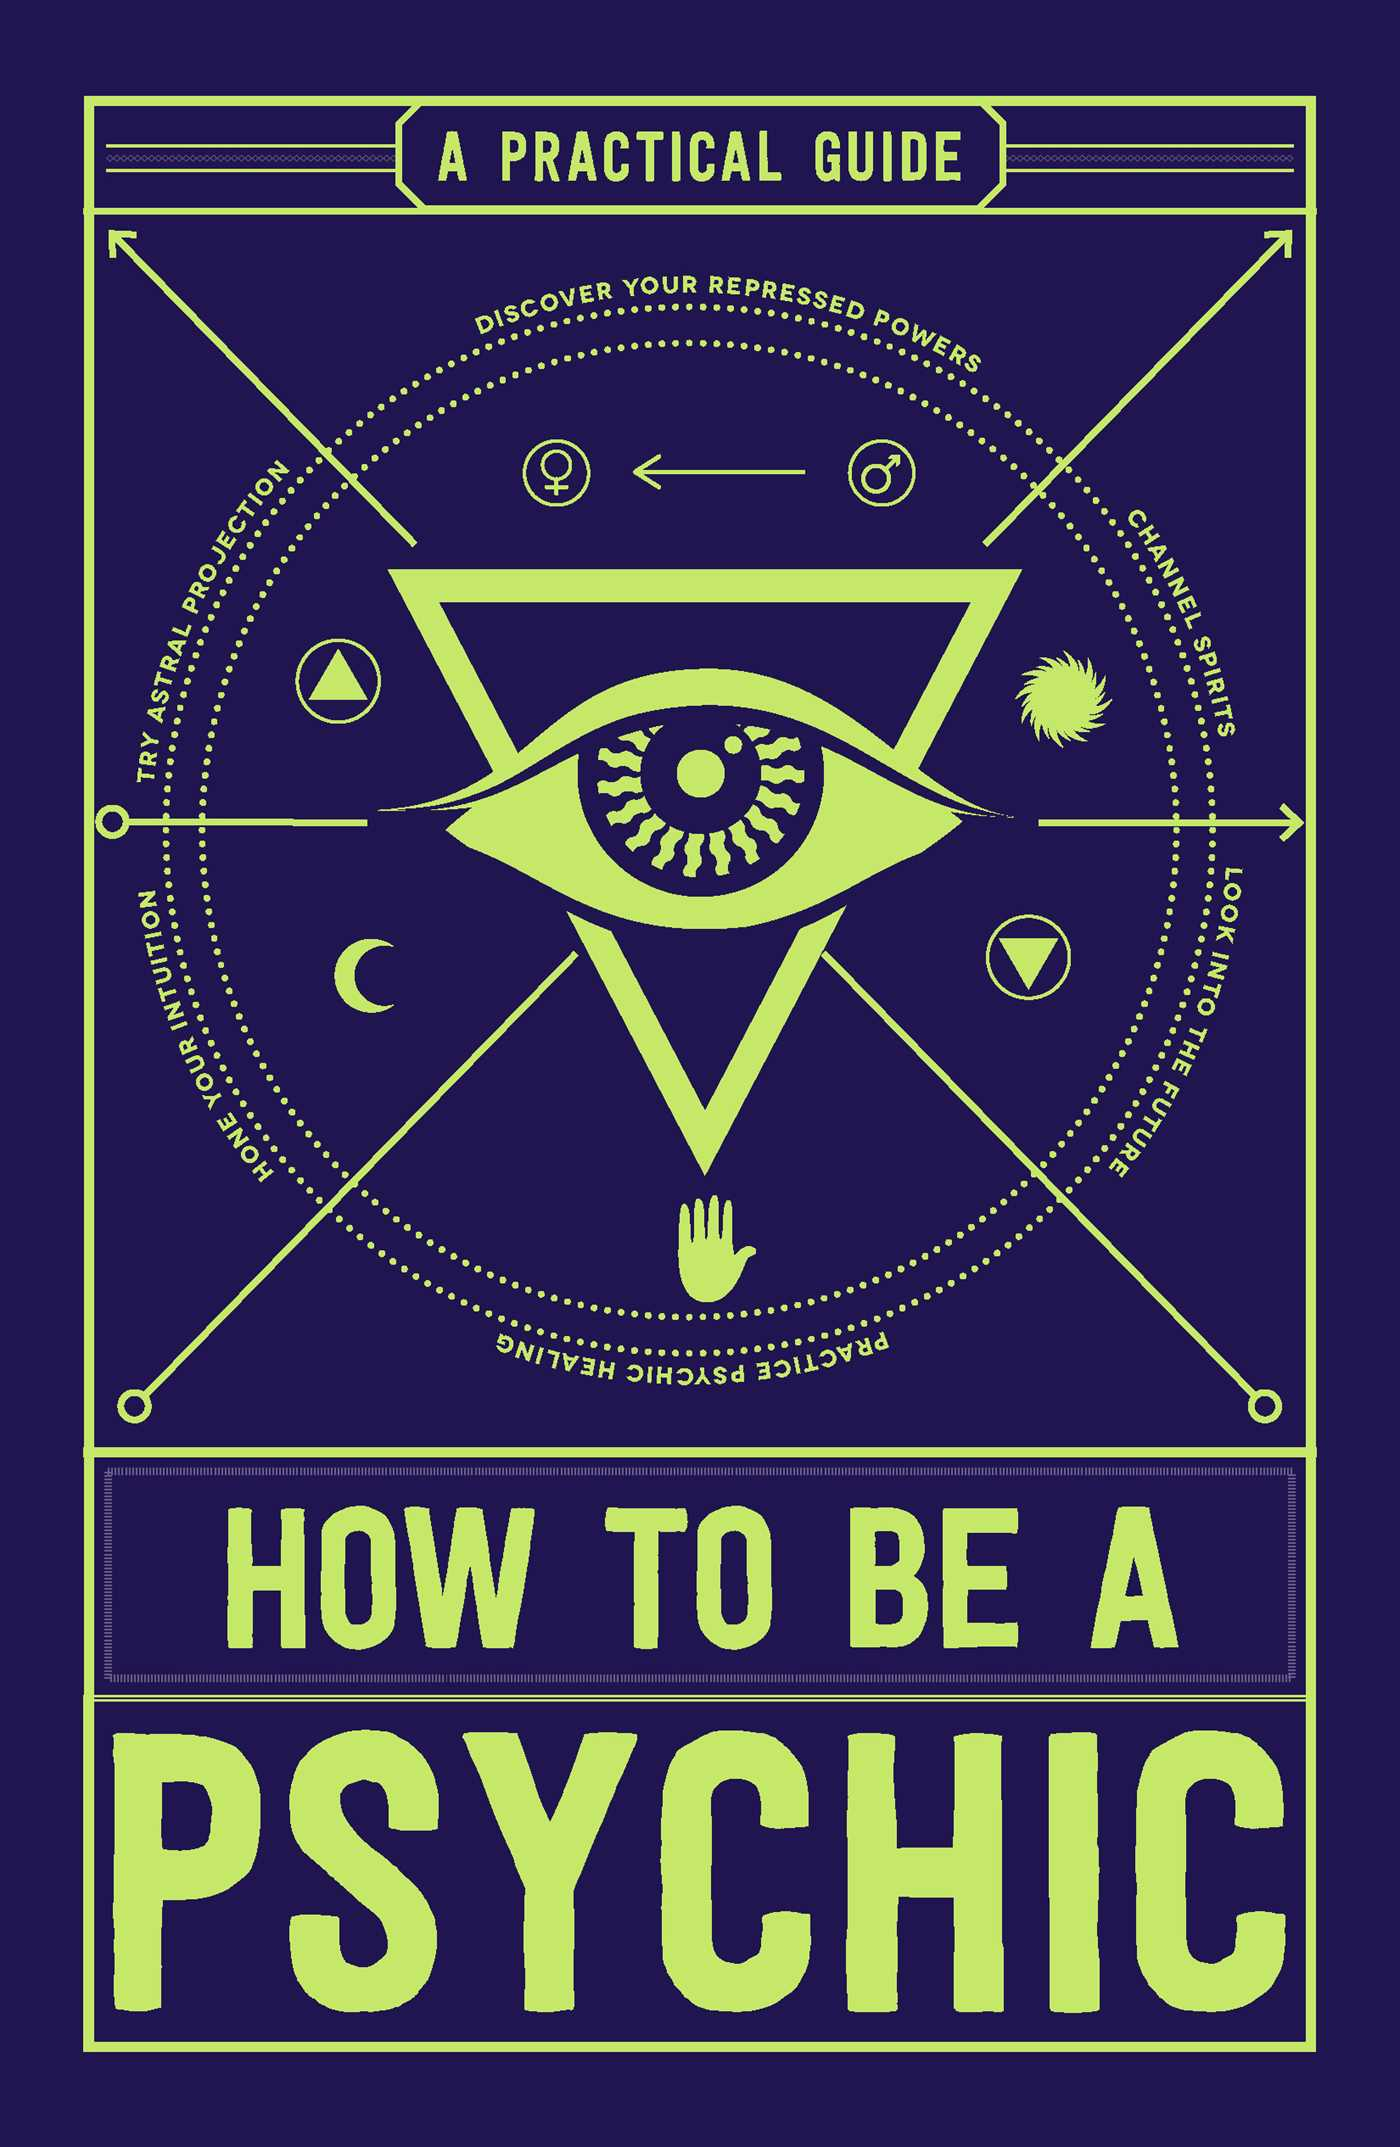 How to become a psychic 45